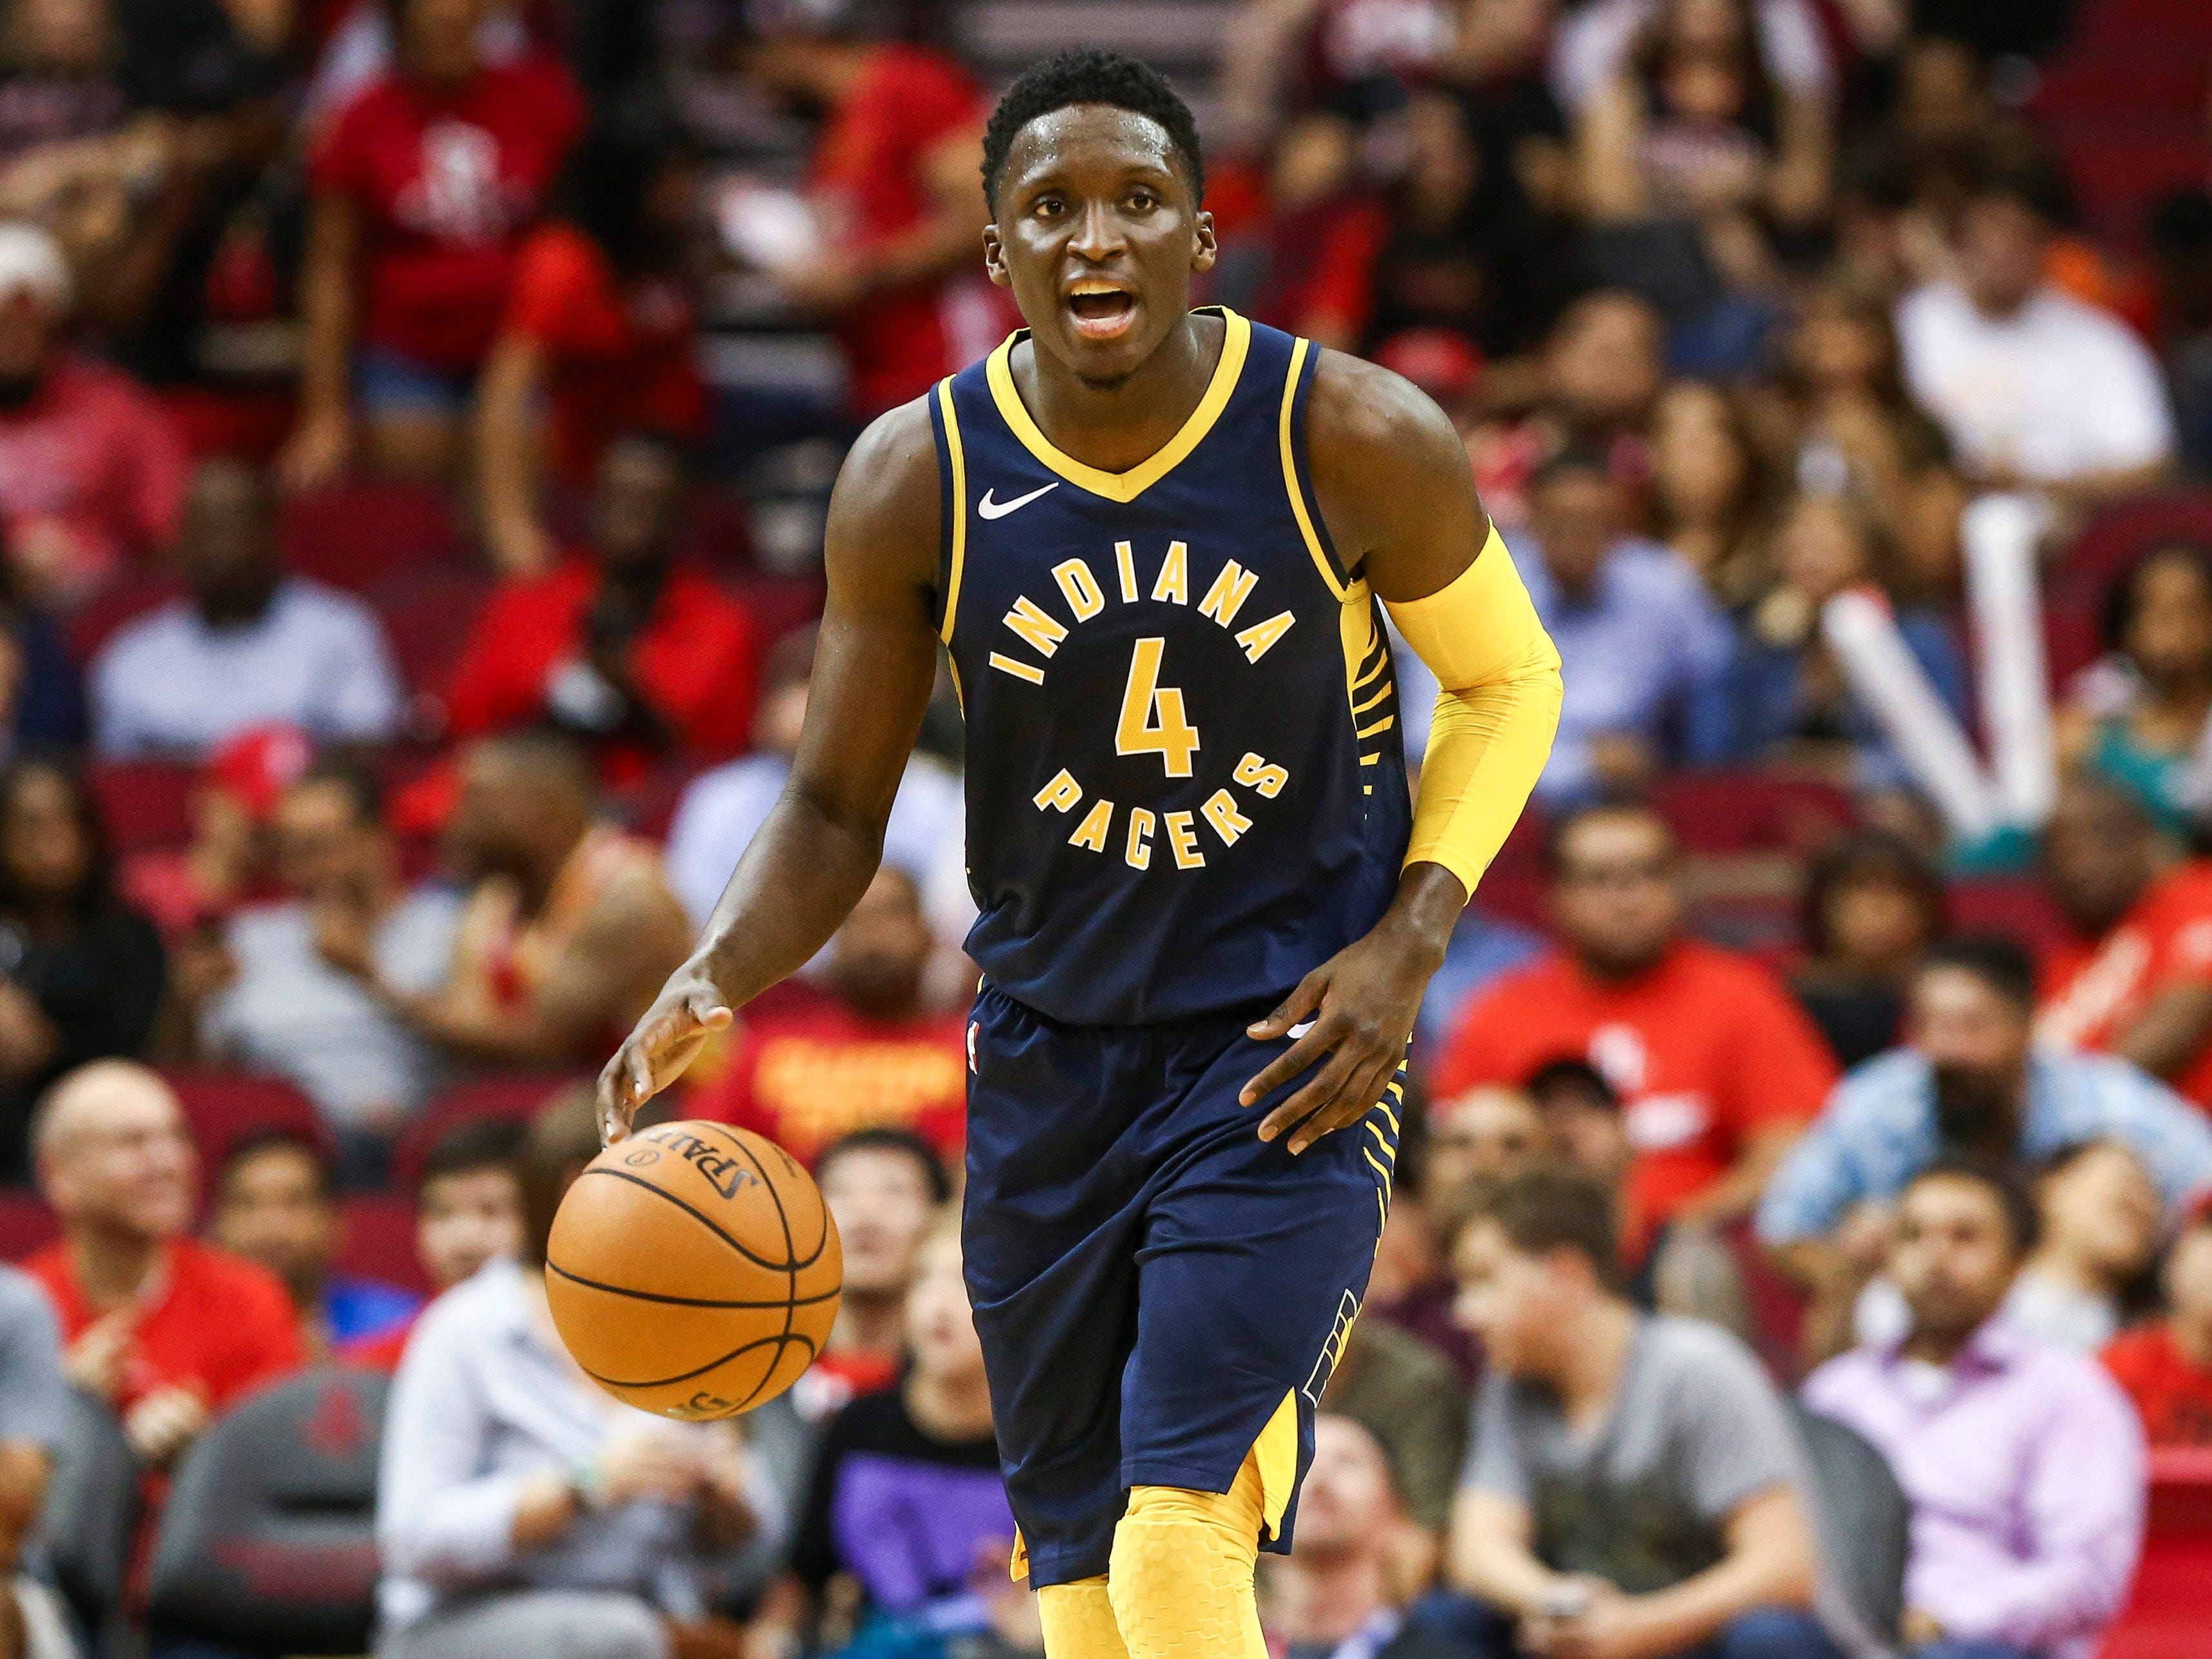 Indiana Pacers guard Victor Oladipo (4) dribbles the ball during the third quarter against the Houston Rockets at Toyota Center.